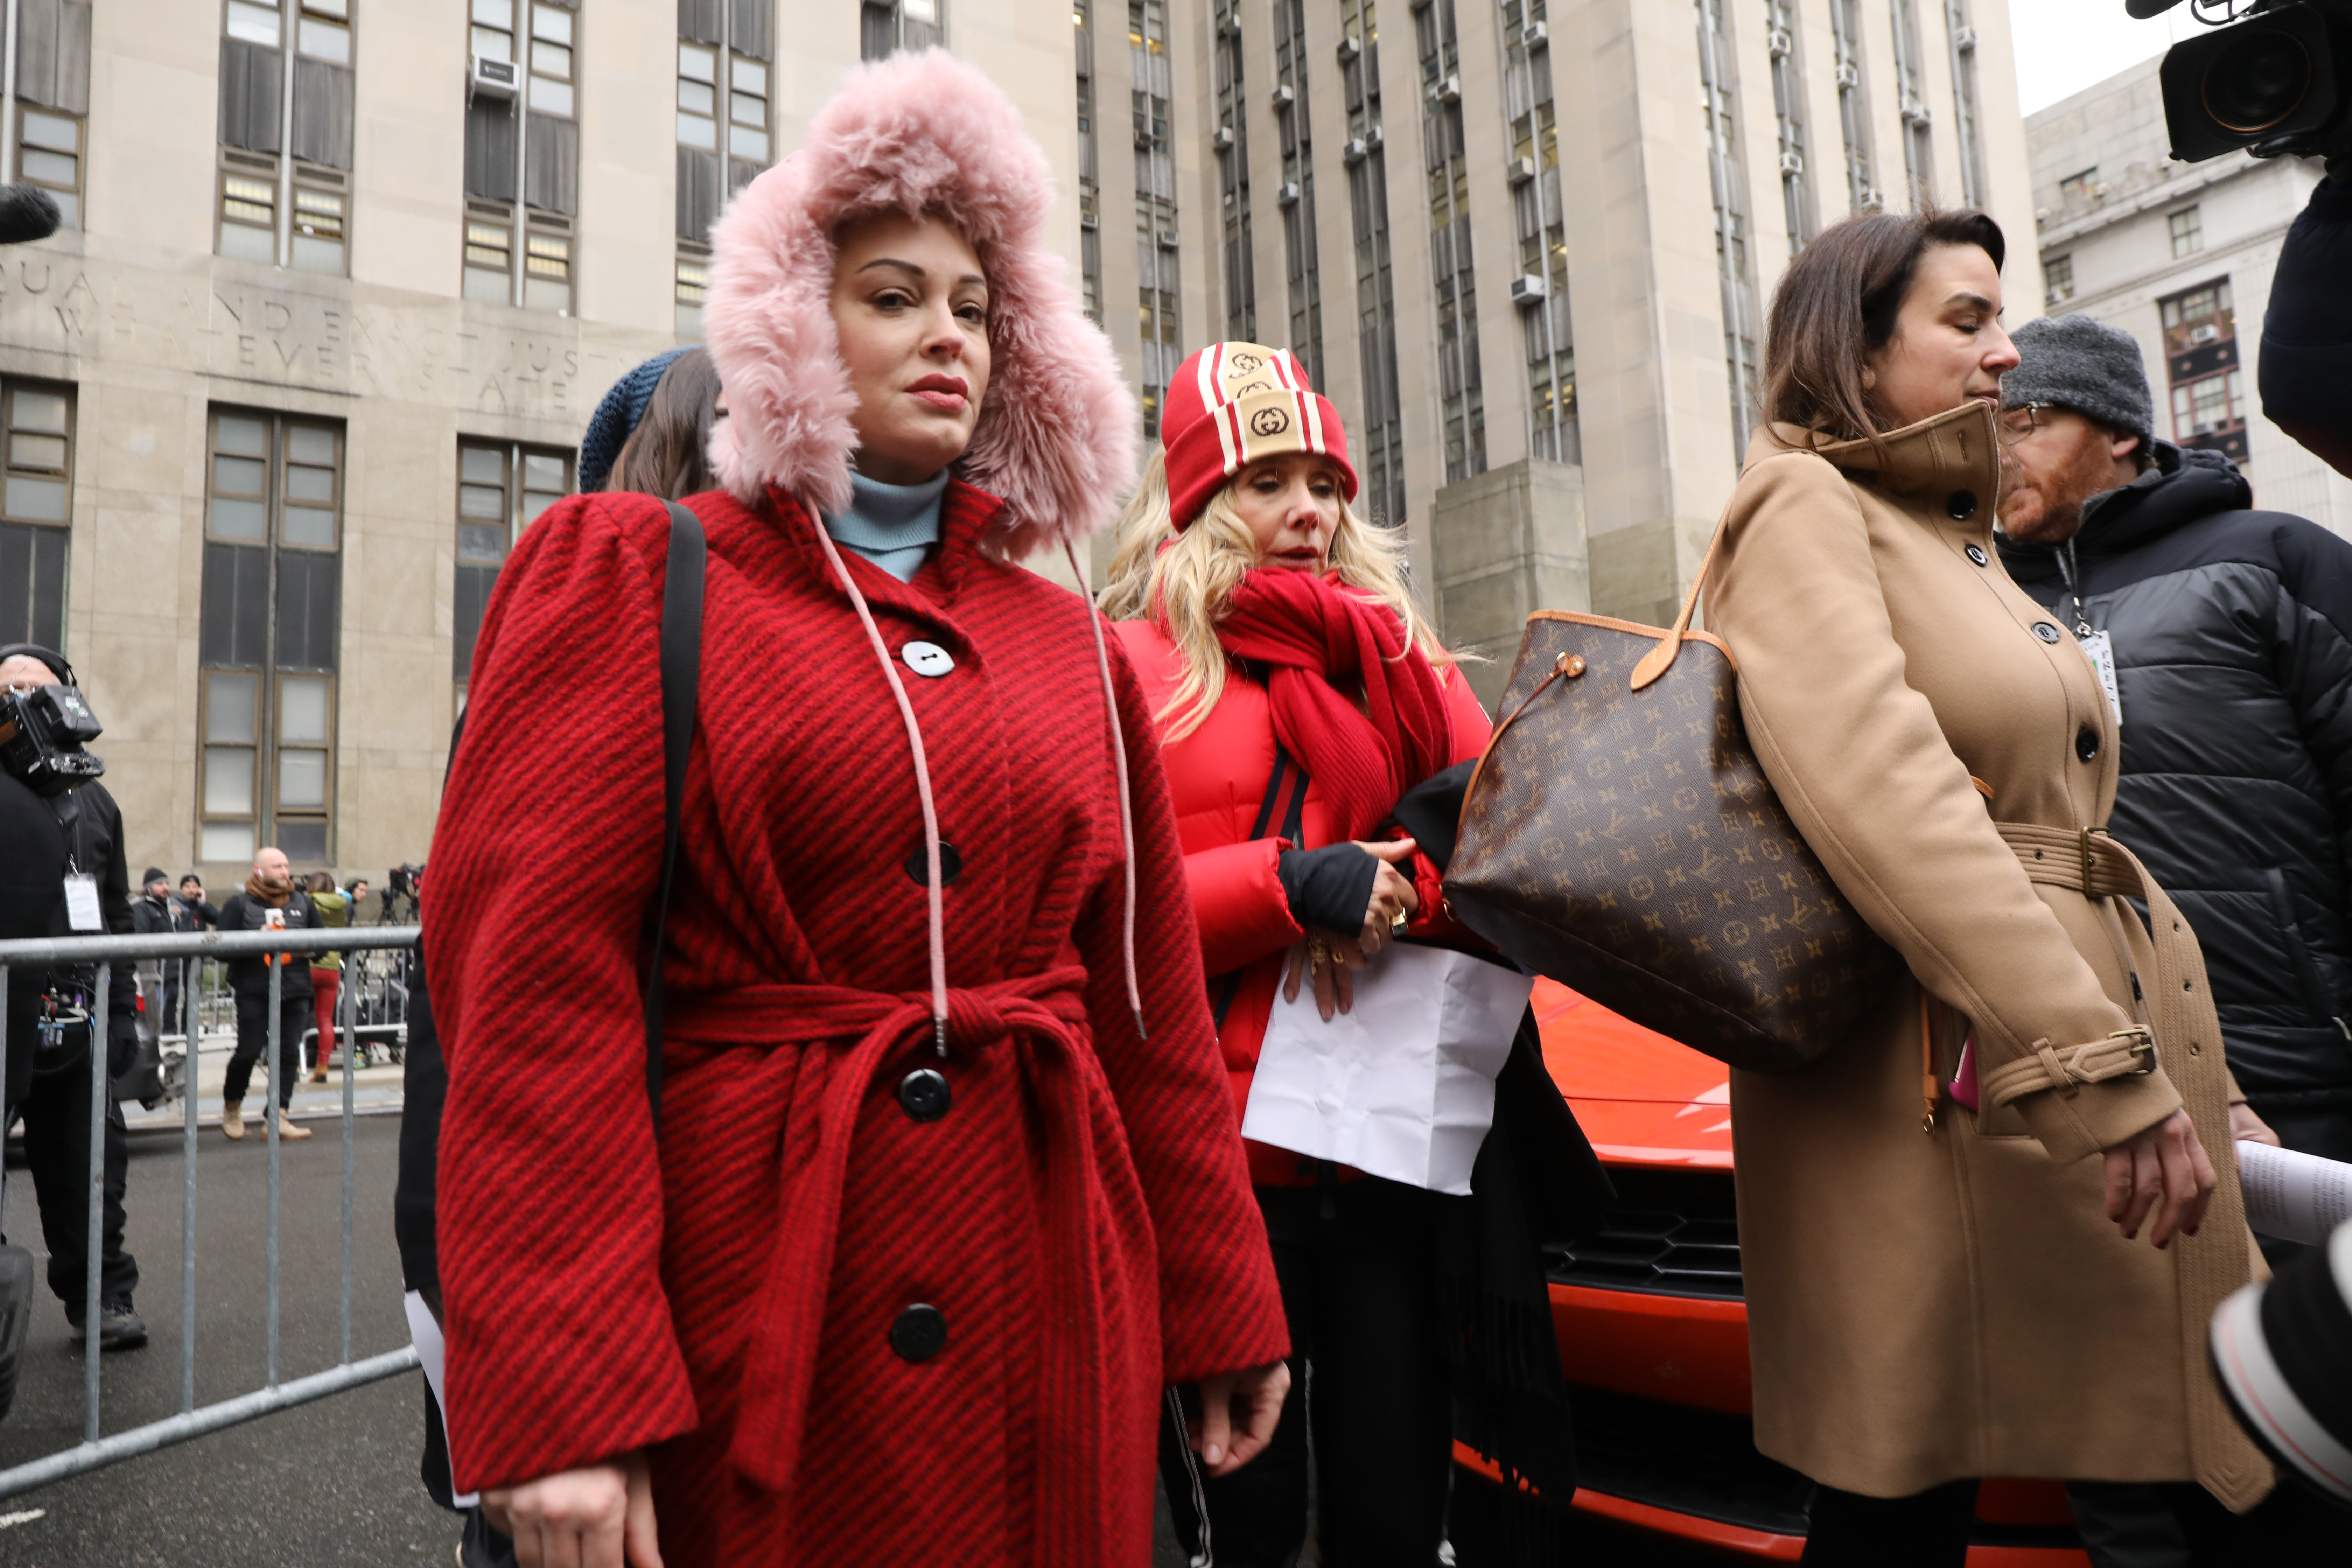 Actress Rose McGowan, who accused Weinstein of raping her more two two decades ago and then of destroying her career, joins other accusers and protesters as Harvey Weinstein arrives at a Manhattan court house for the start of his trial on January 06, 2020 in New York City. Weinstein, a movie producer whose alleged sexual misconduct helped spark the #MeToo movement, pleaded not-guilty on five counts of rape and sexual assault against two unnamed women and faces a possible life sentence in prison. (Photo by Spencer Platt/Getty Images)